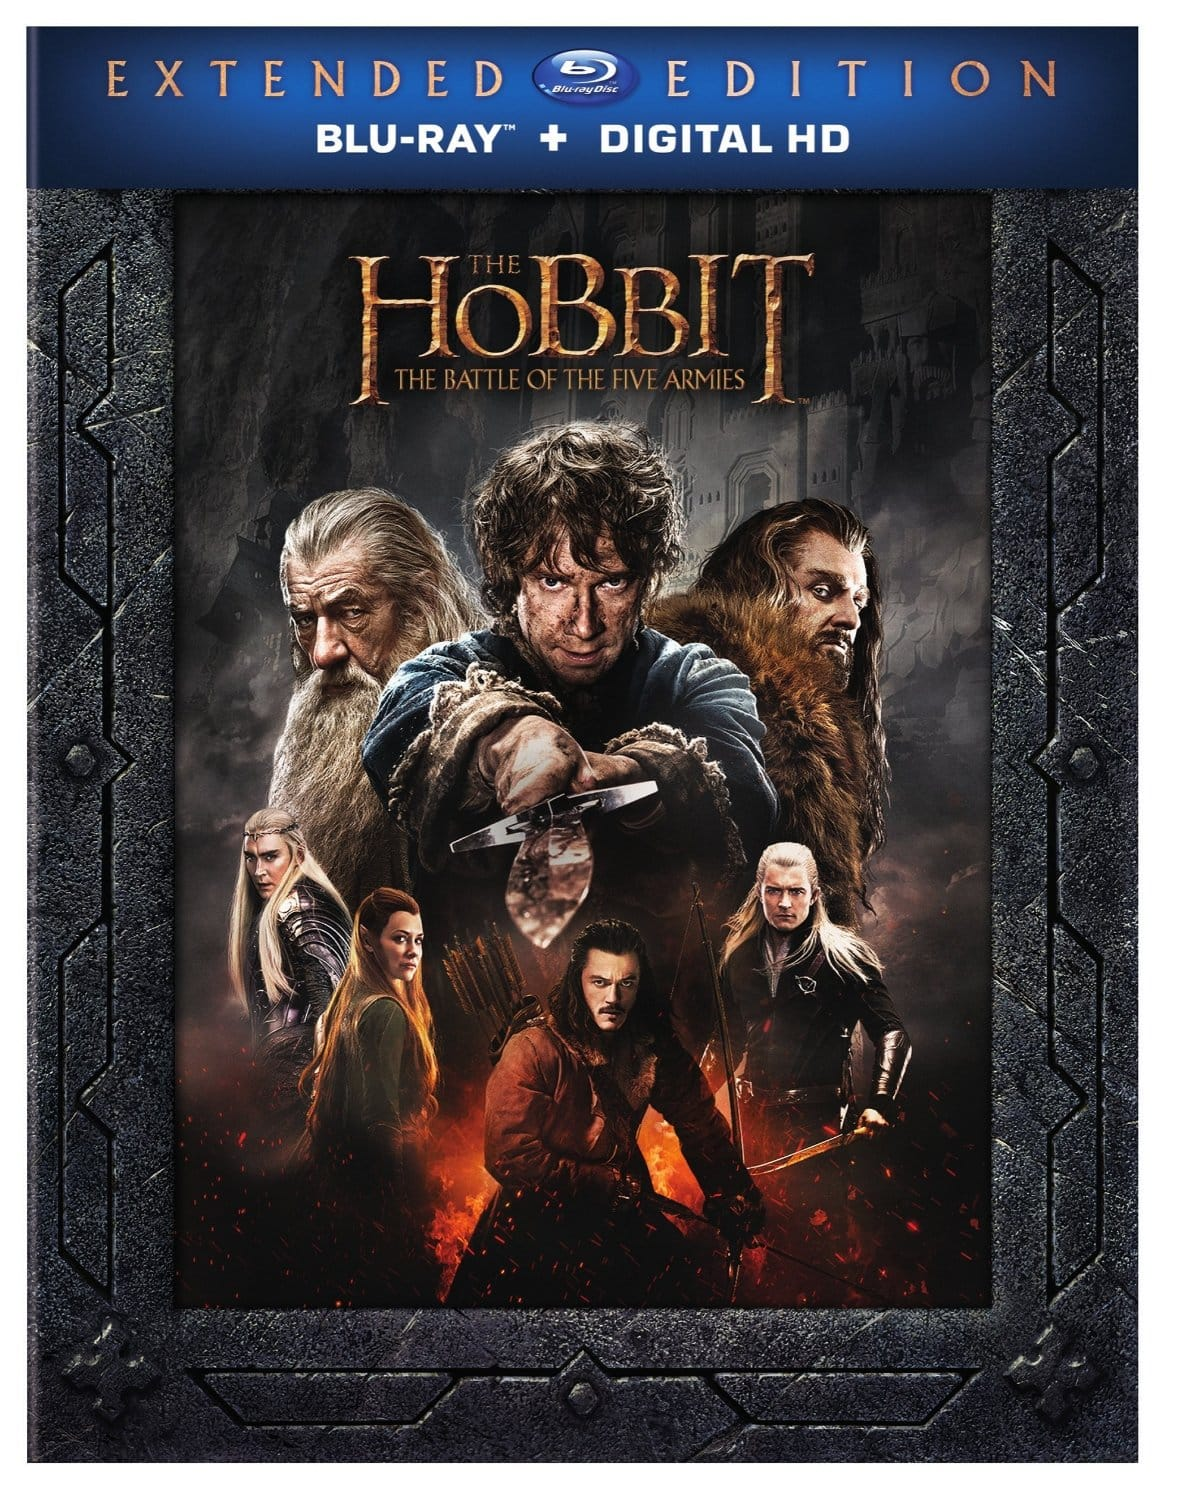 The Hobbit: The Battle of Five Armies Extended Edition (BD) [Blu-ray + Digital) $12.09 @ Amazon